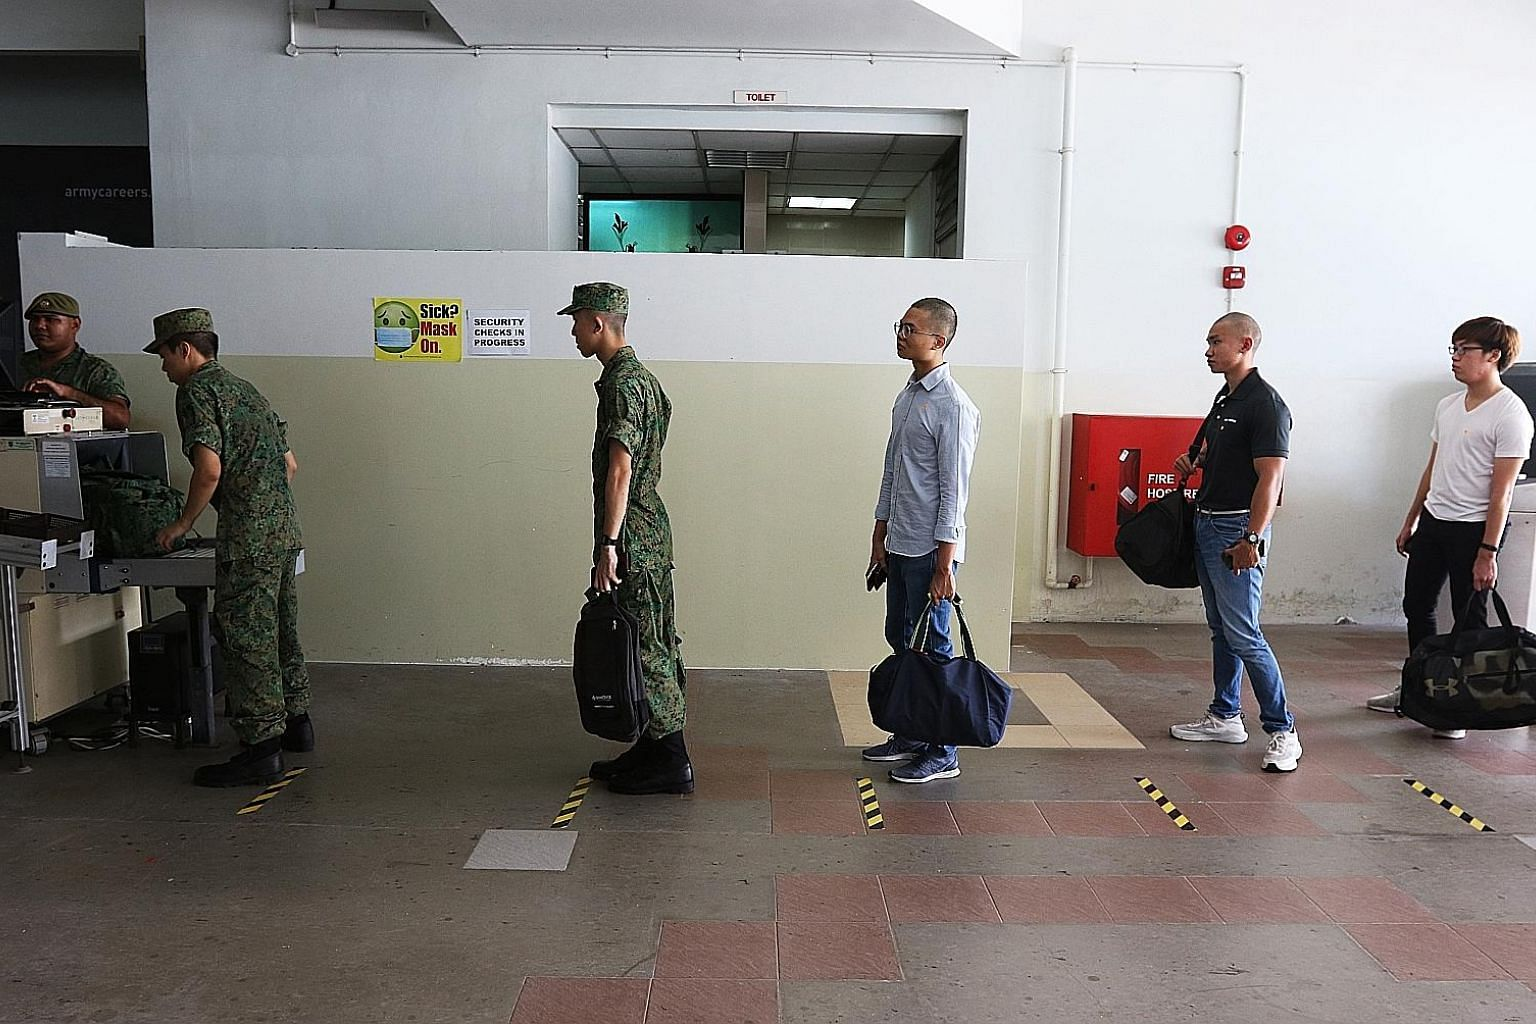 Recruits on their day of enlistment at the SAF Ferry Terminal on April 1. The resumption of basic military training is necessary to generate operational units as well as select commanders for training at the Officer Cadet and Specialist Cadet schools